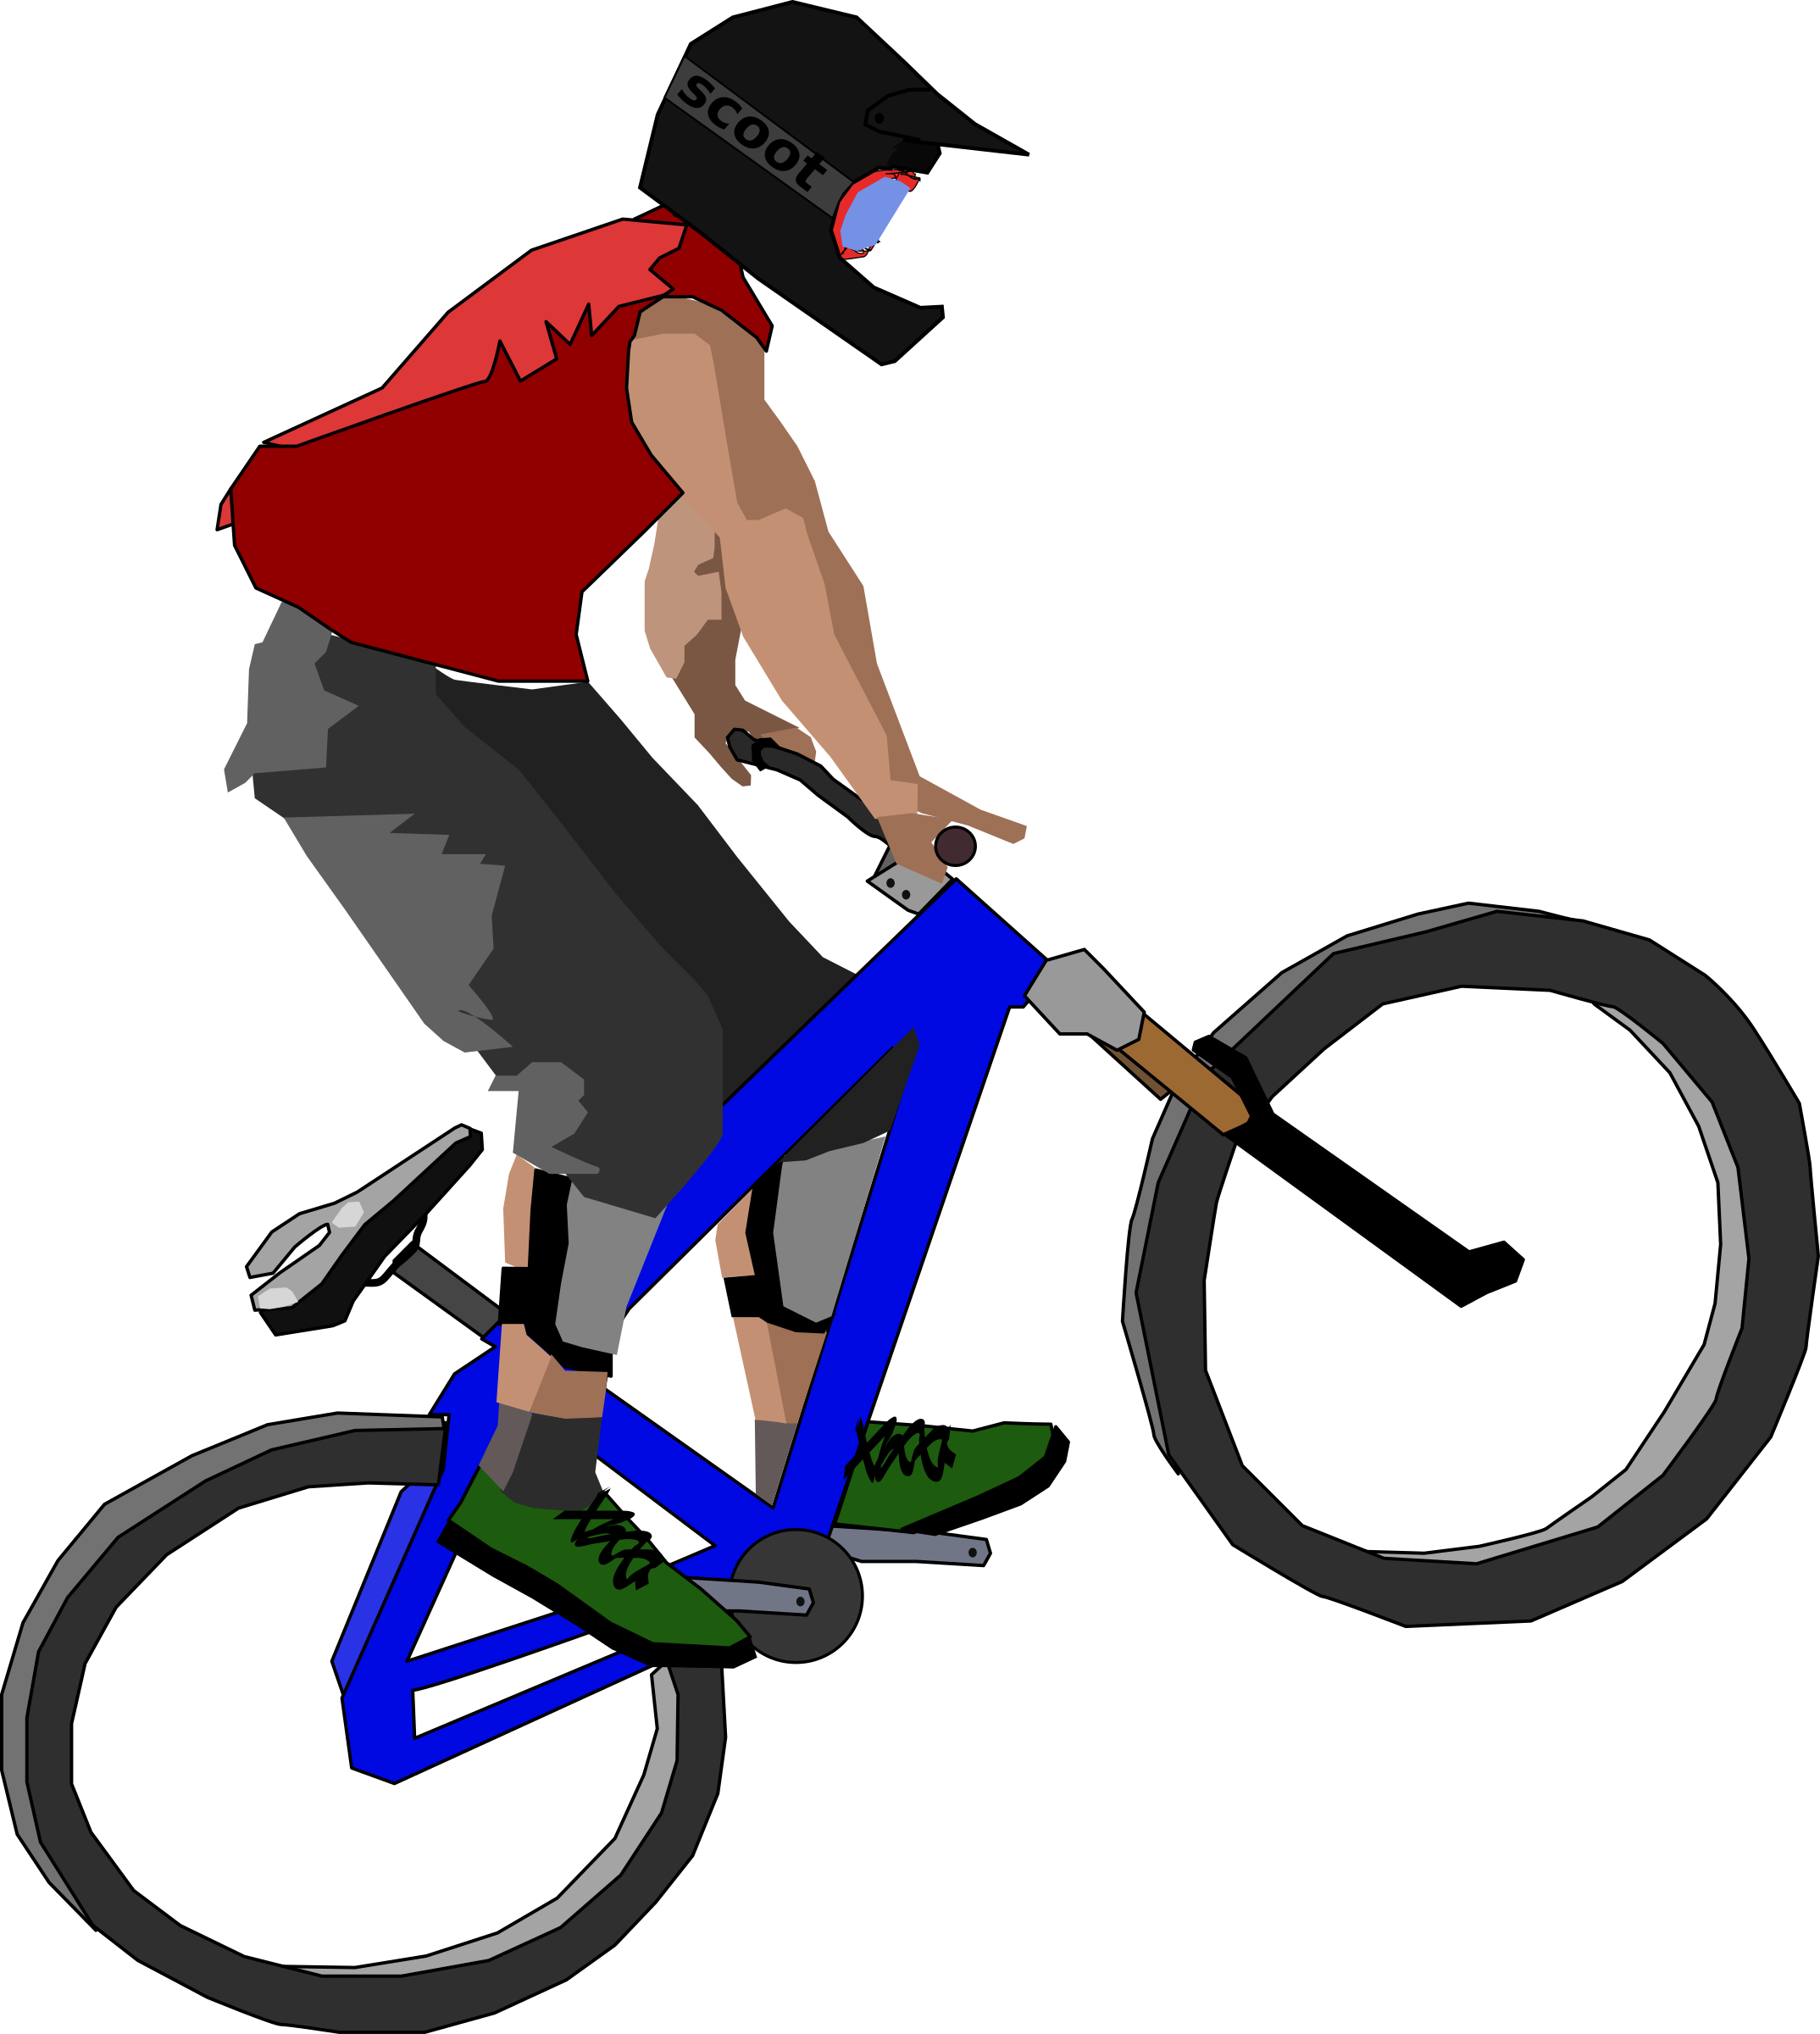 Cycle clipart vector. Biker big image png